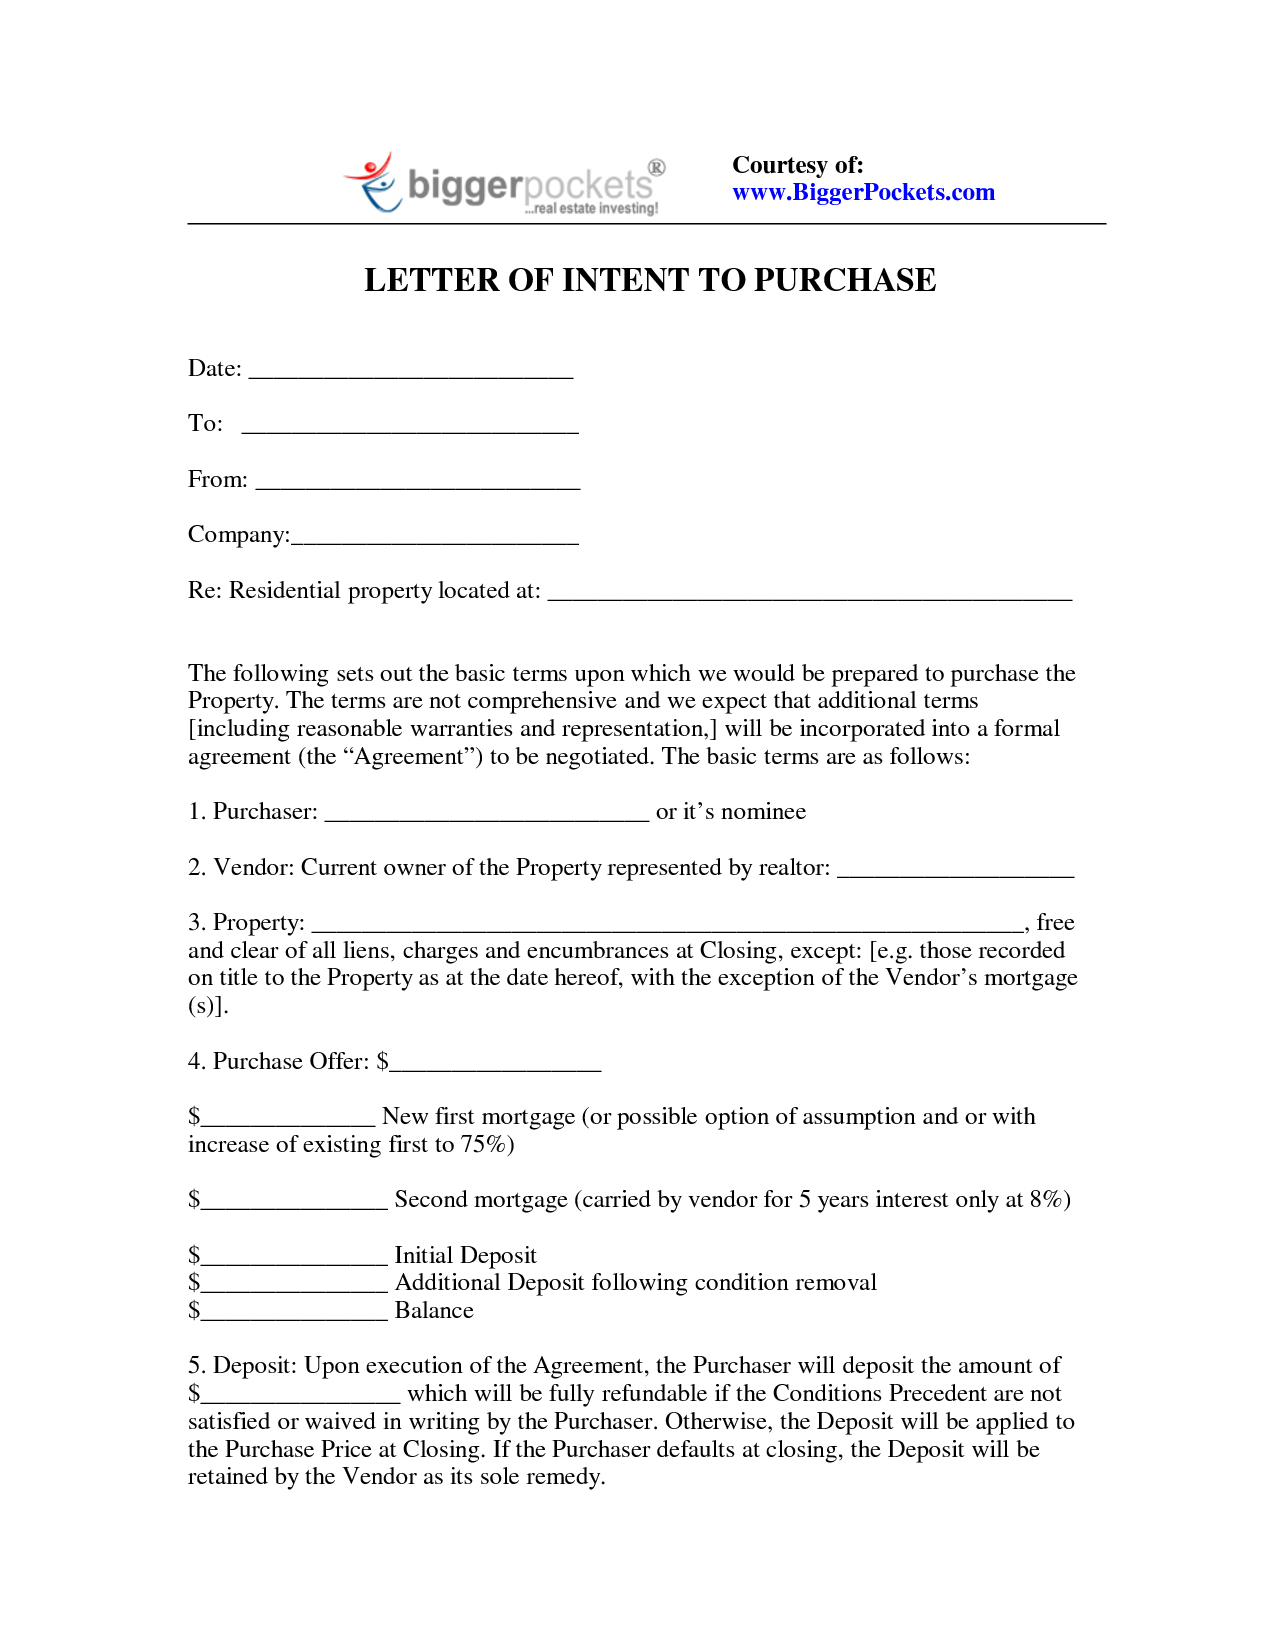 Letter Of Intent to Purchase Real Estate Template - Letter Intent to Purchase Real Estate Sample Buy Philippines